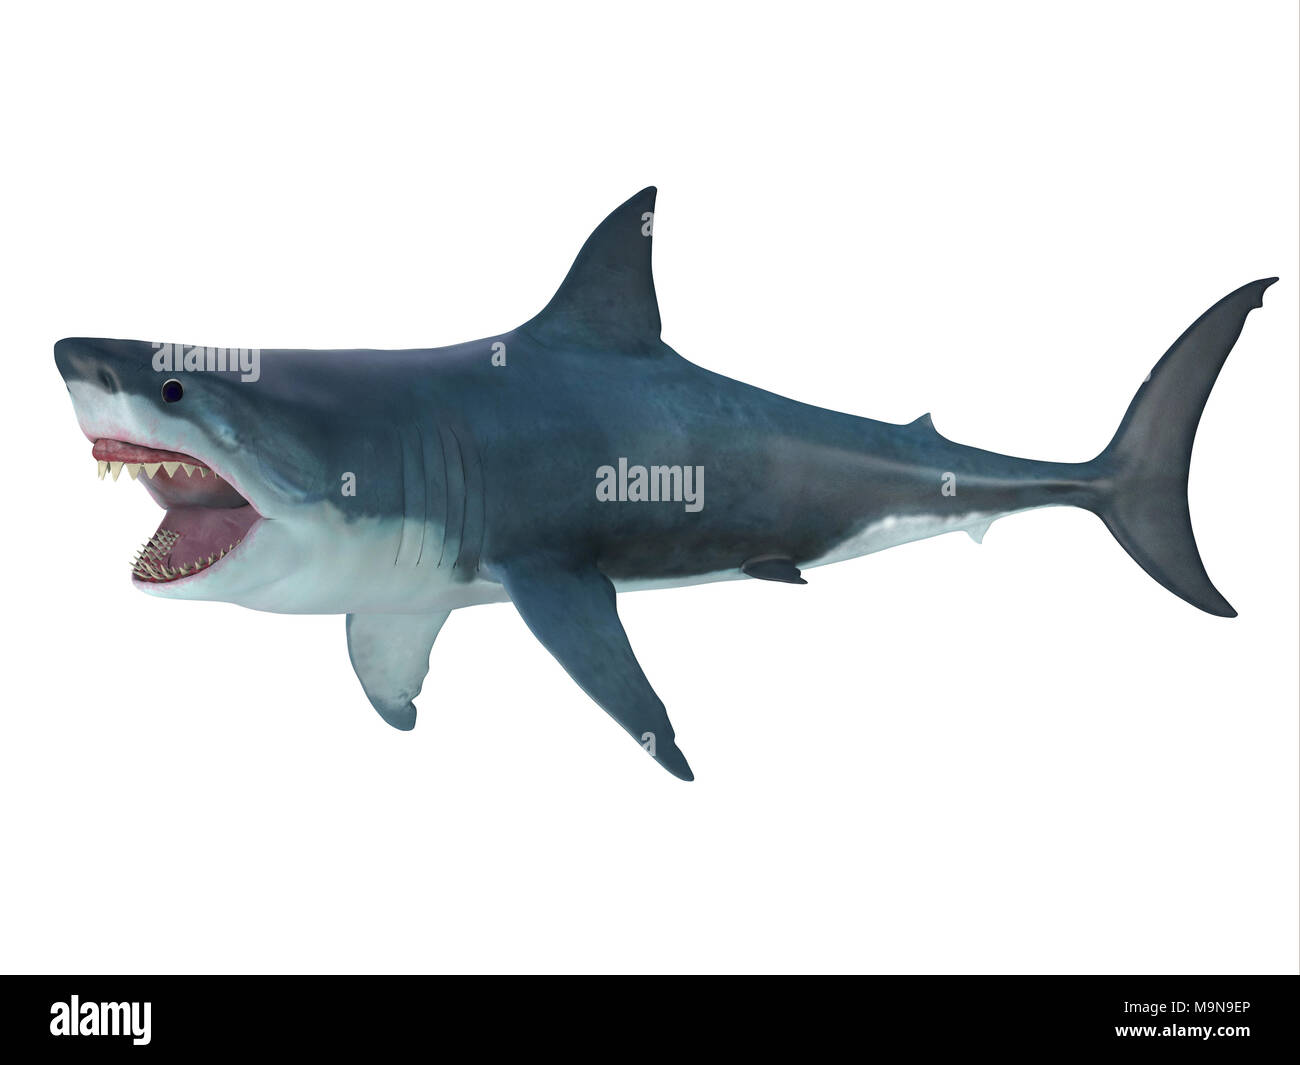 Megalodon Shark Attack Posture - The prehistoric Megalodon shark could grow to be 82 feet in length and lived during the Miocene to Pliocene Periods. - Stock Image